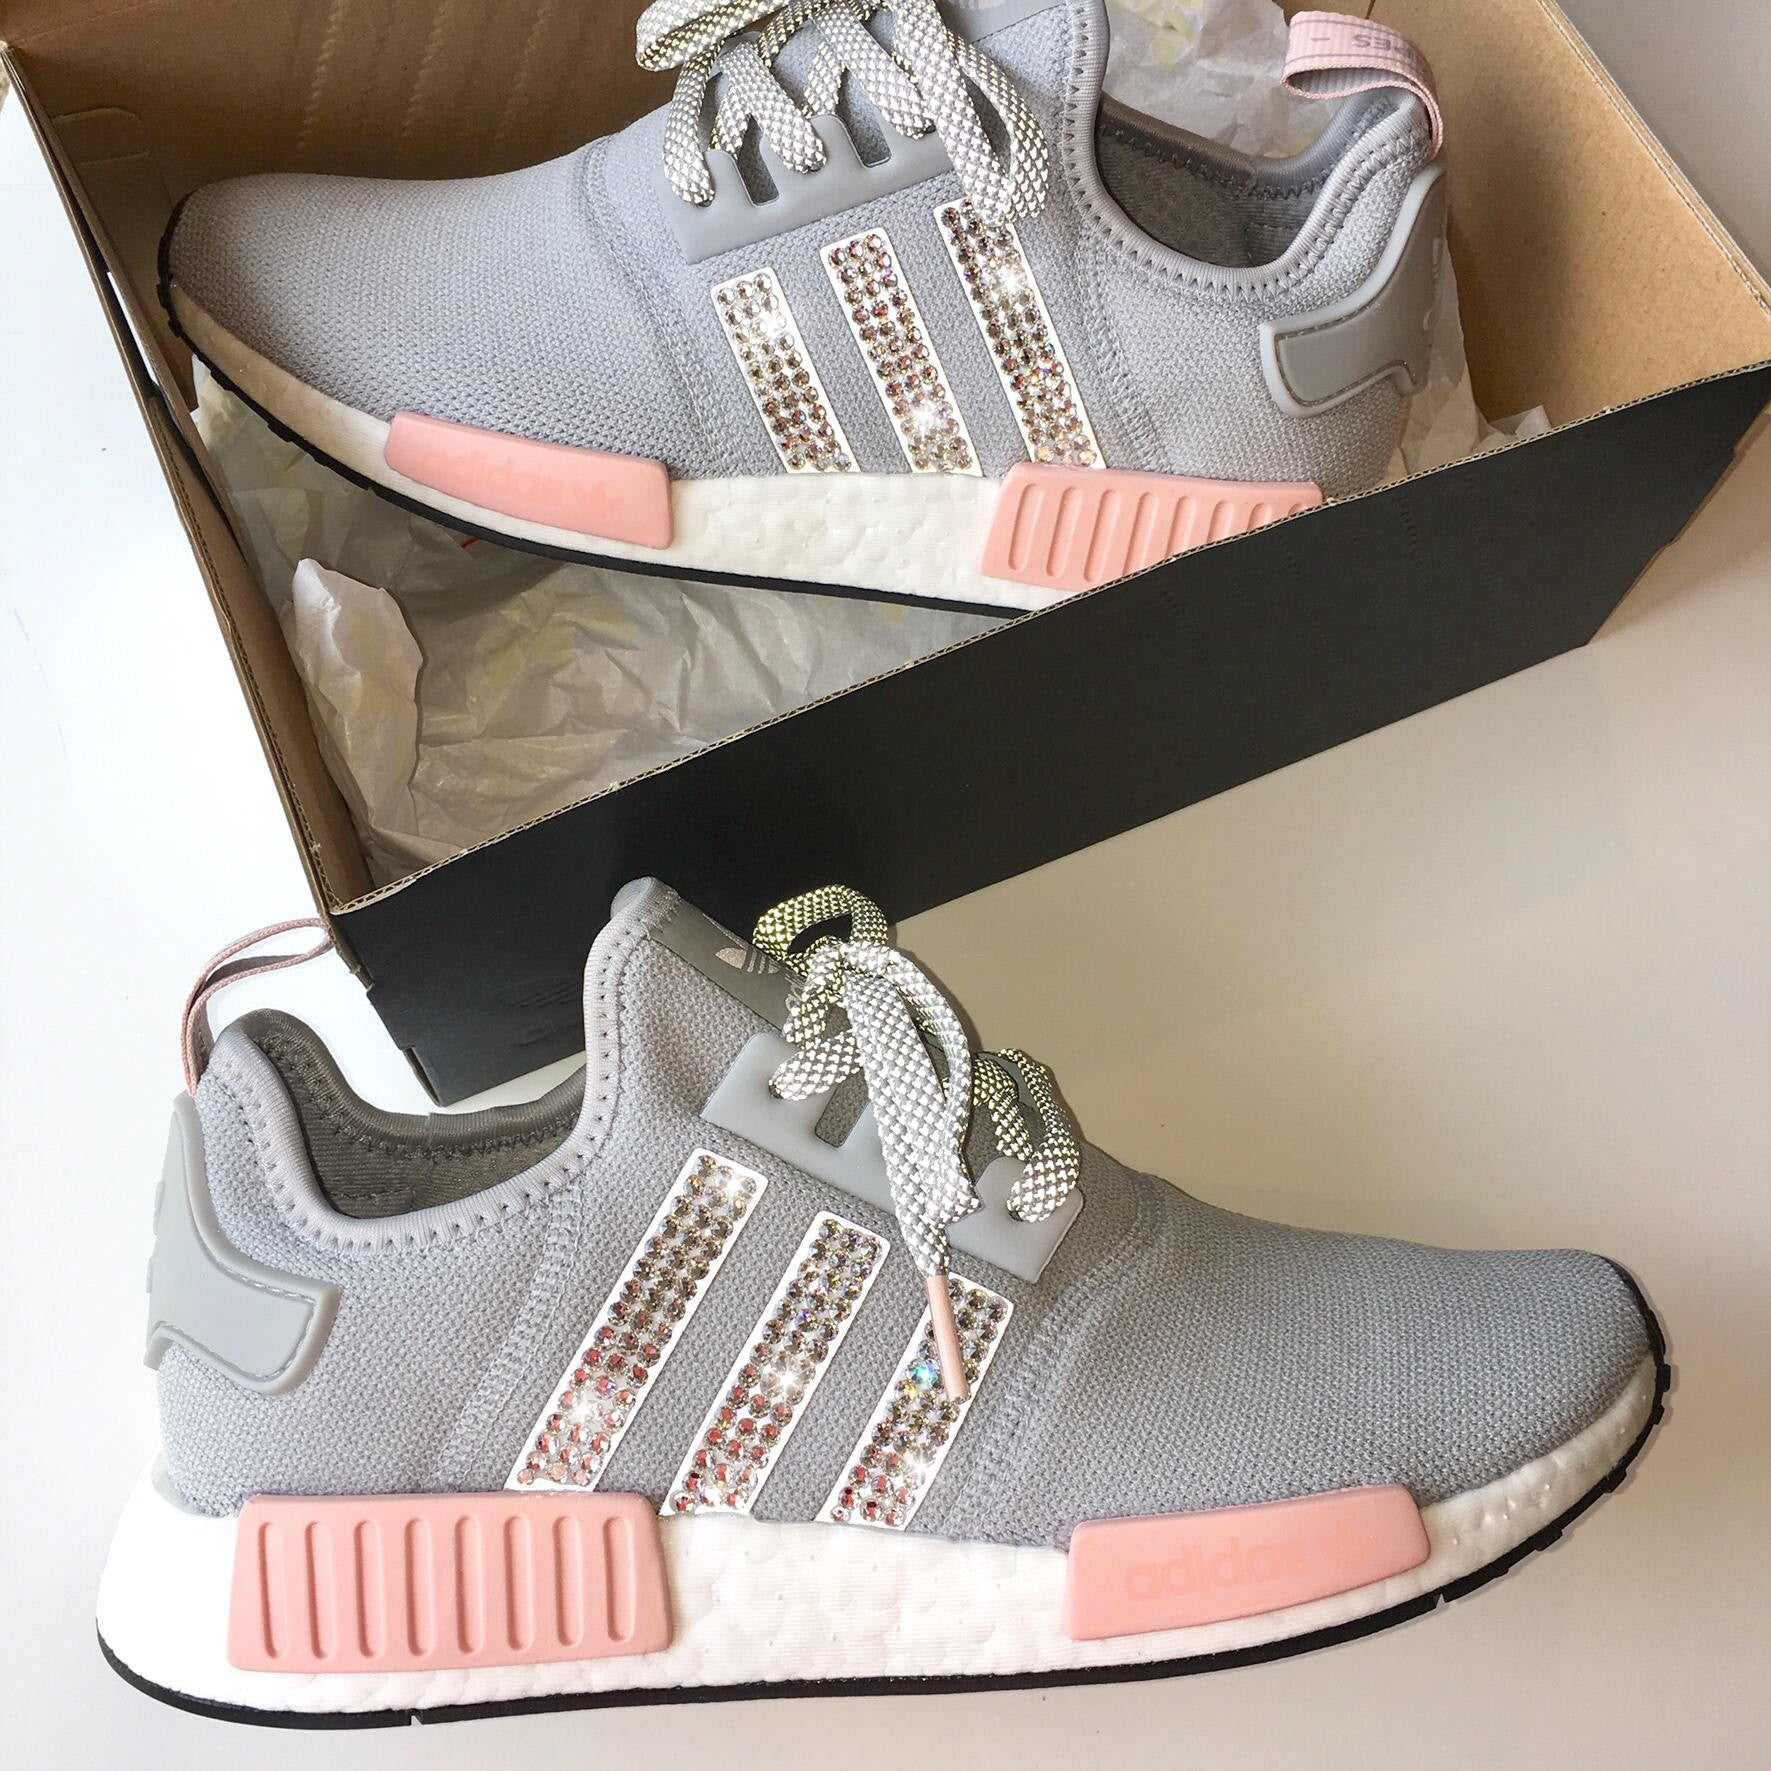 fe26f47d7 ... order new bling adidas nmd with swarovski crystals womens originals  nmdr1 runners casual shoes 8678c 964c8